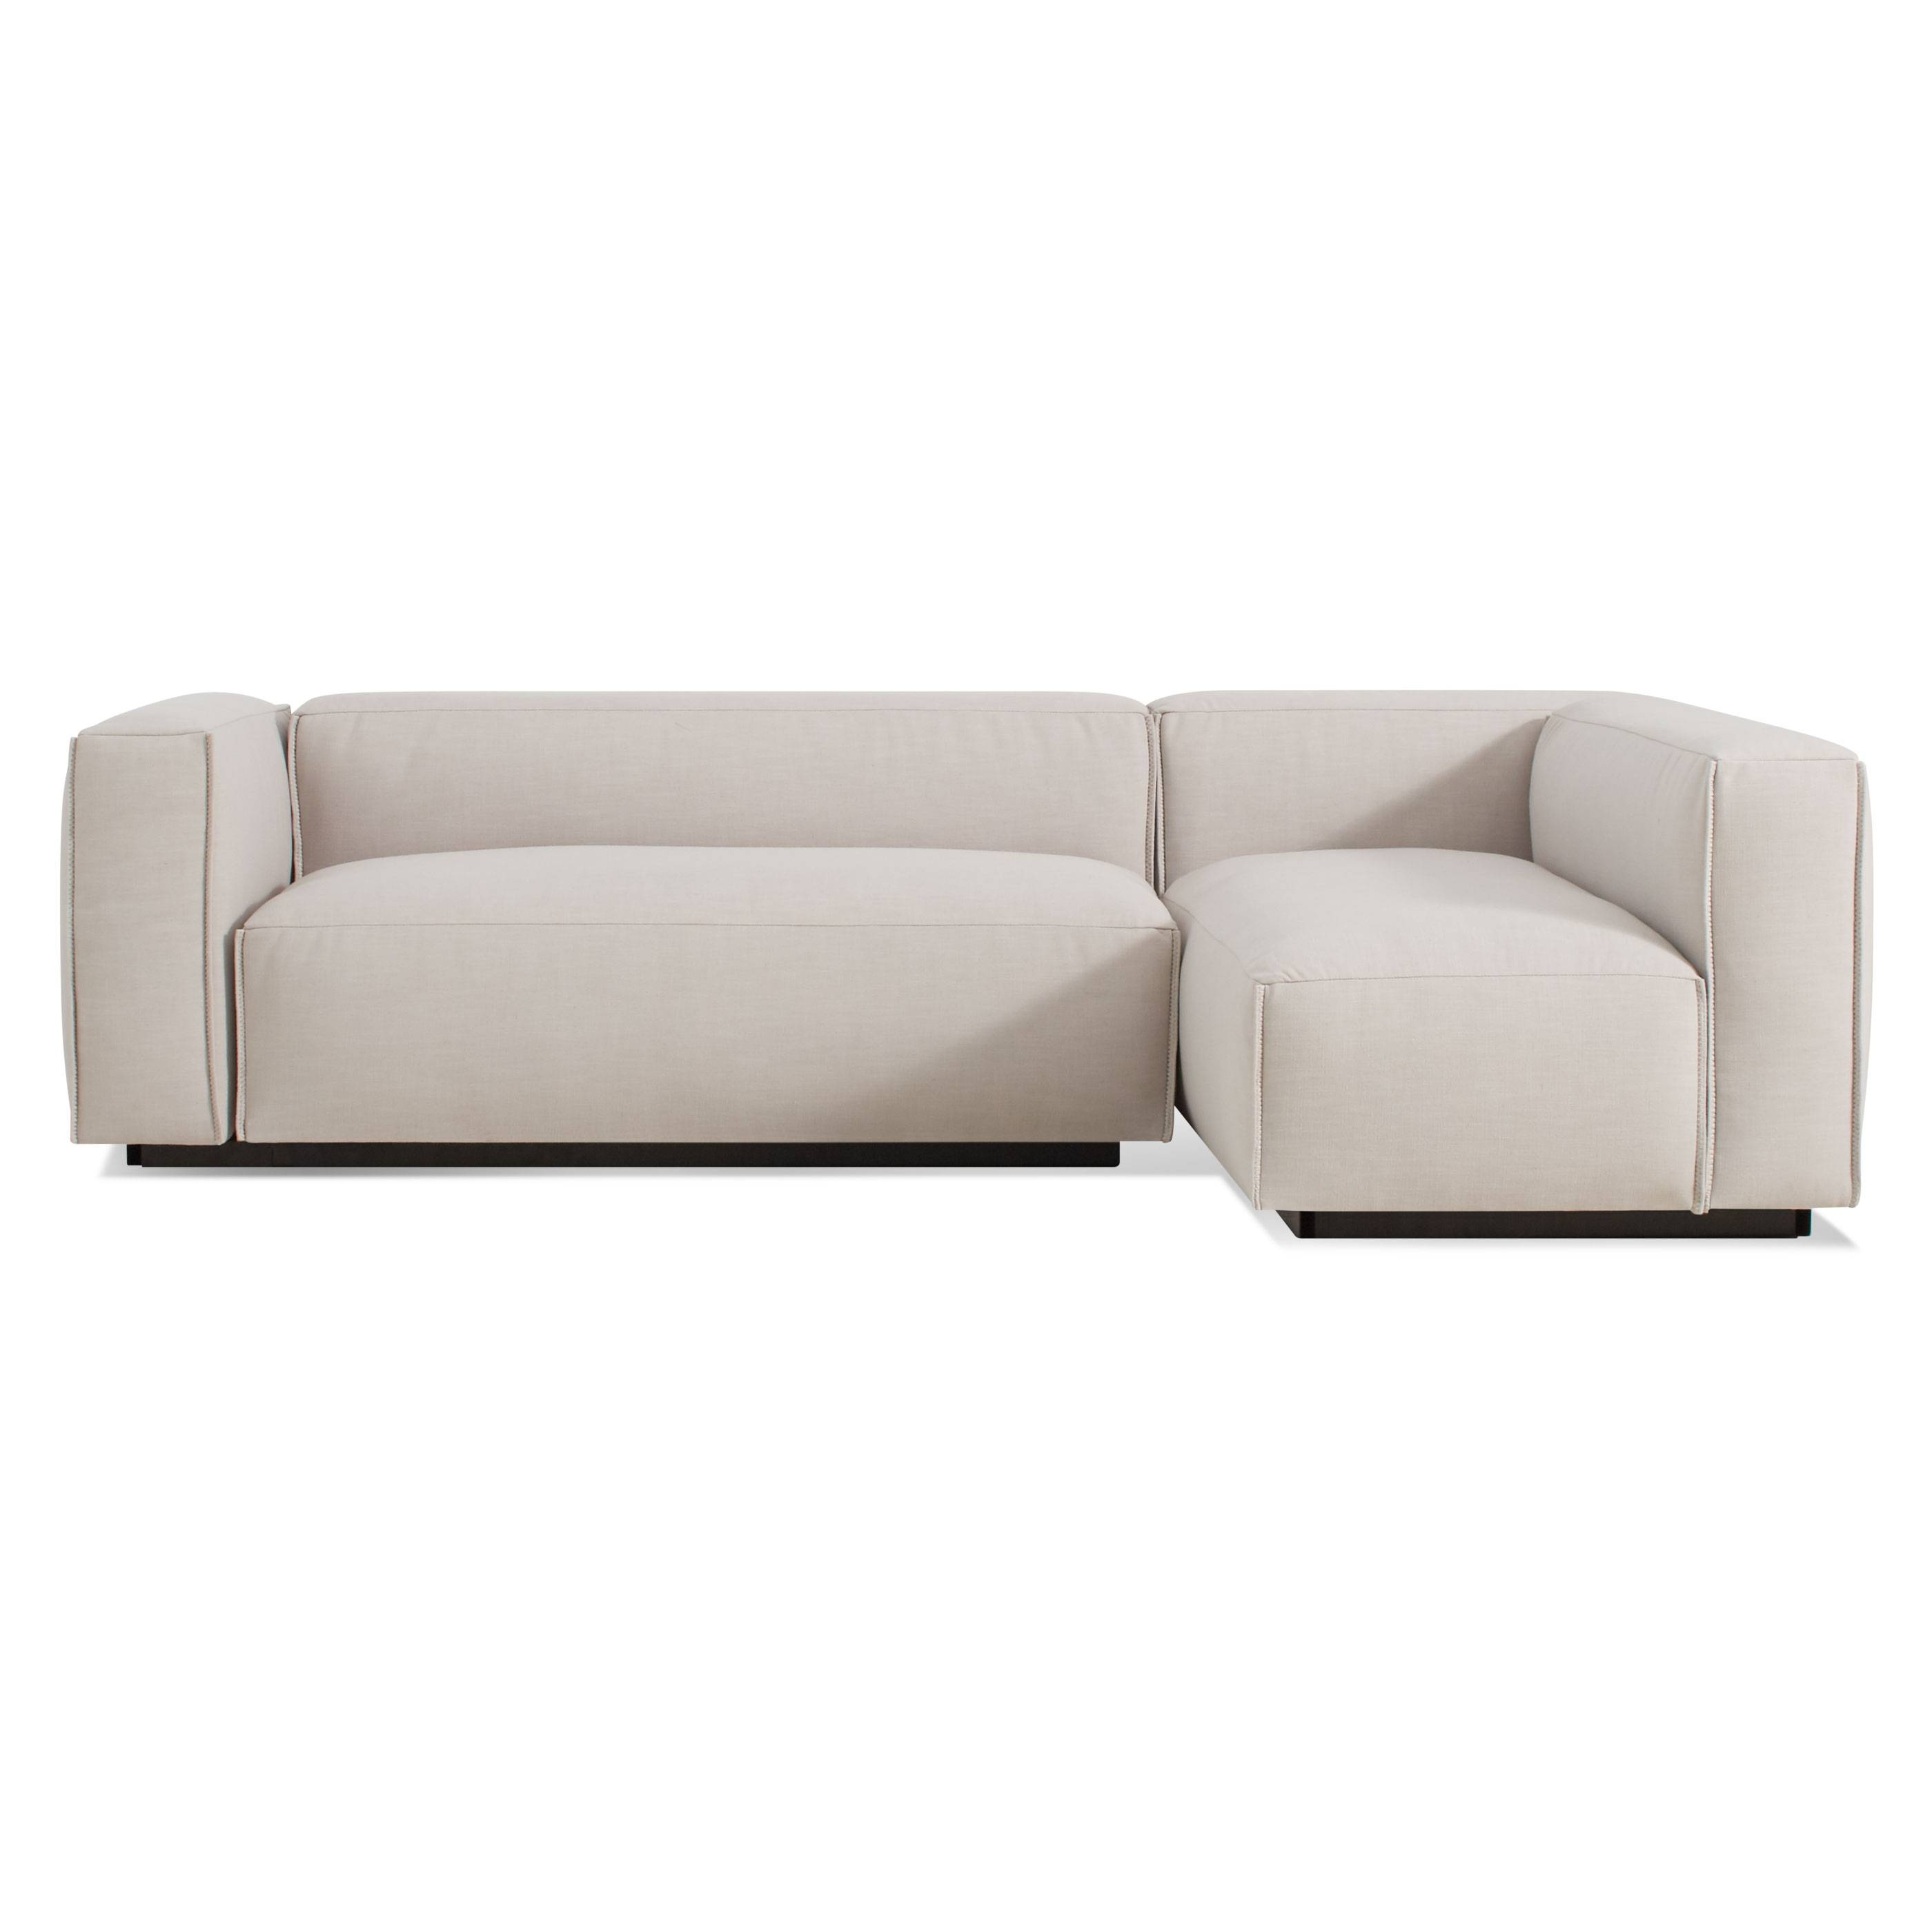 Cleon Small Modern Sectional Sofa | Blu Dot within Small Sectional Sofa (Image 5 of 30)